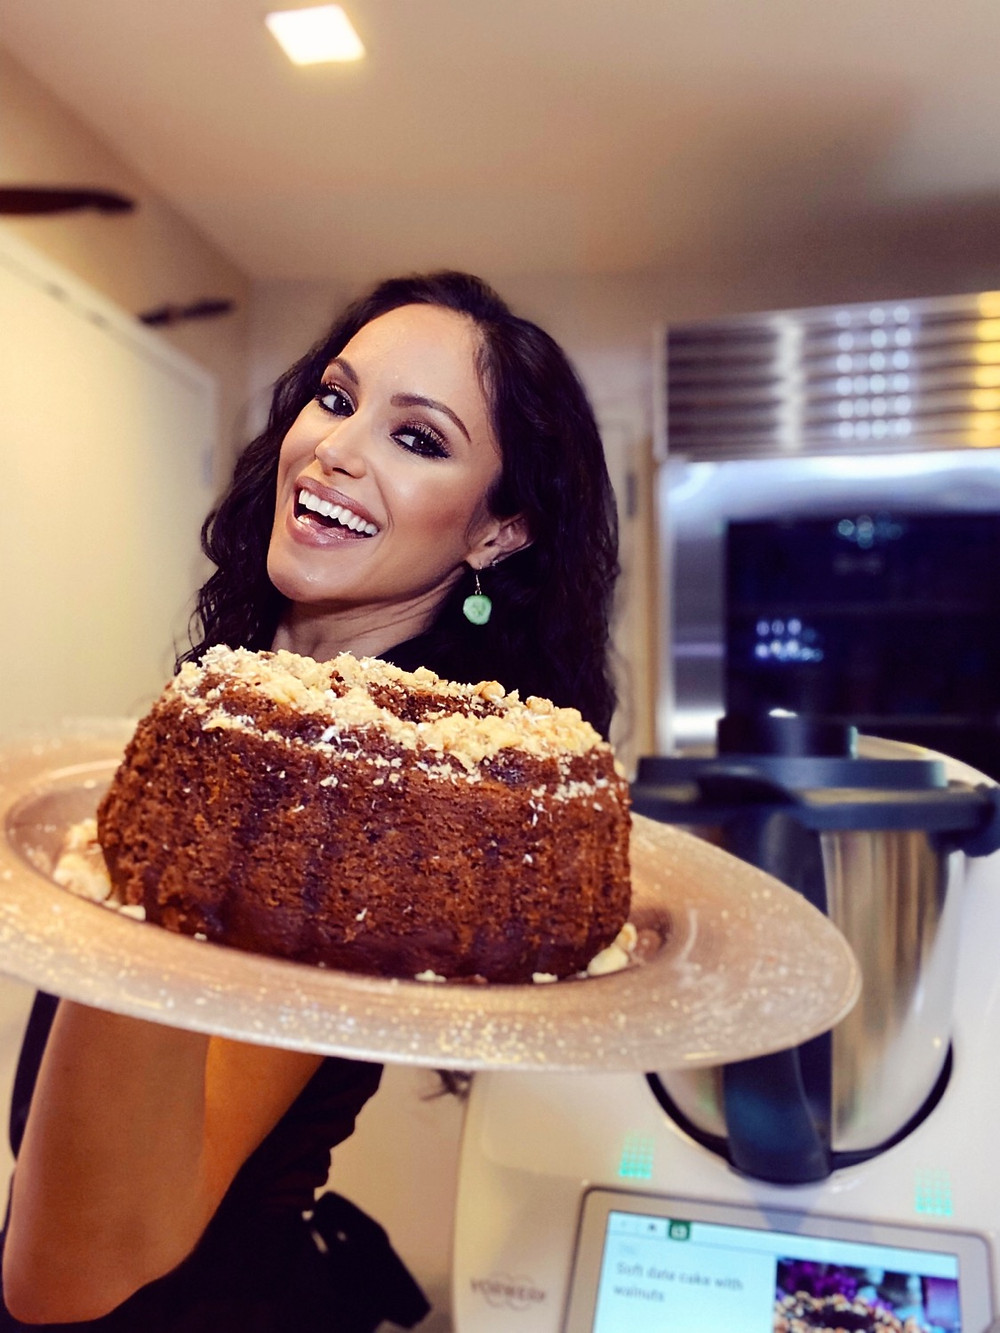 soft date cake vegan dessert plant-based recipes cheryl martinez vegan chef thermomix tm6